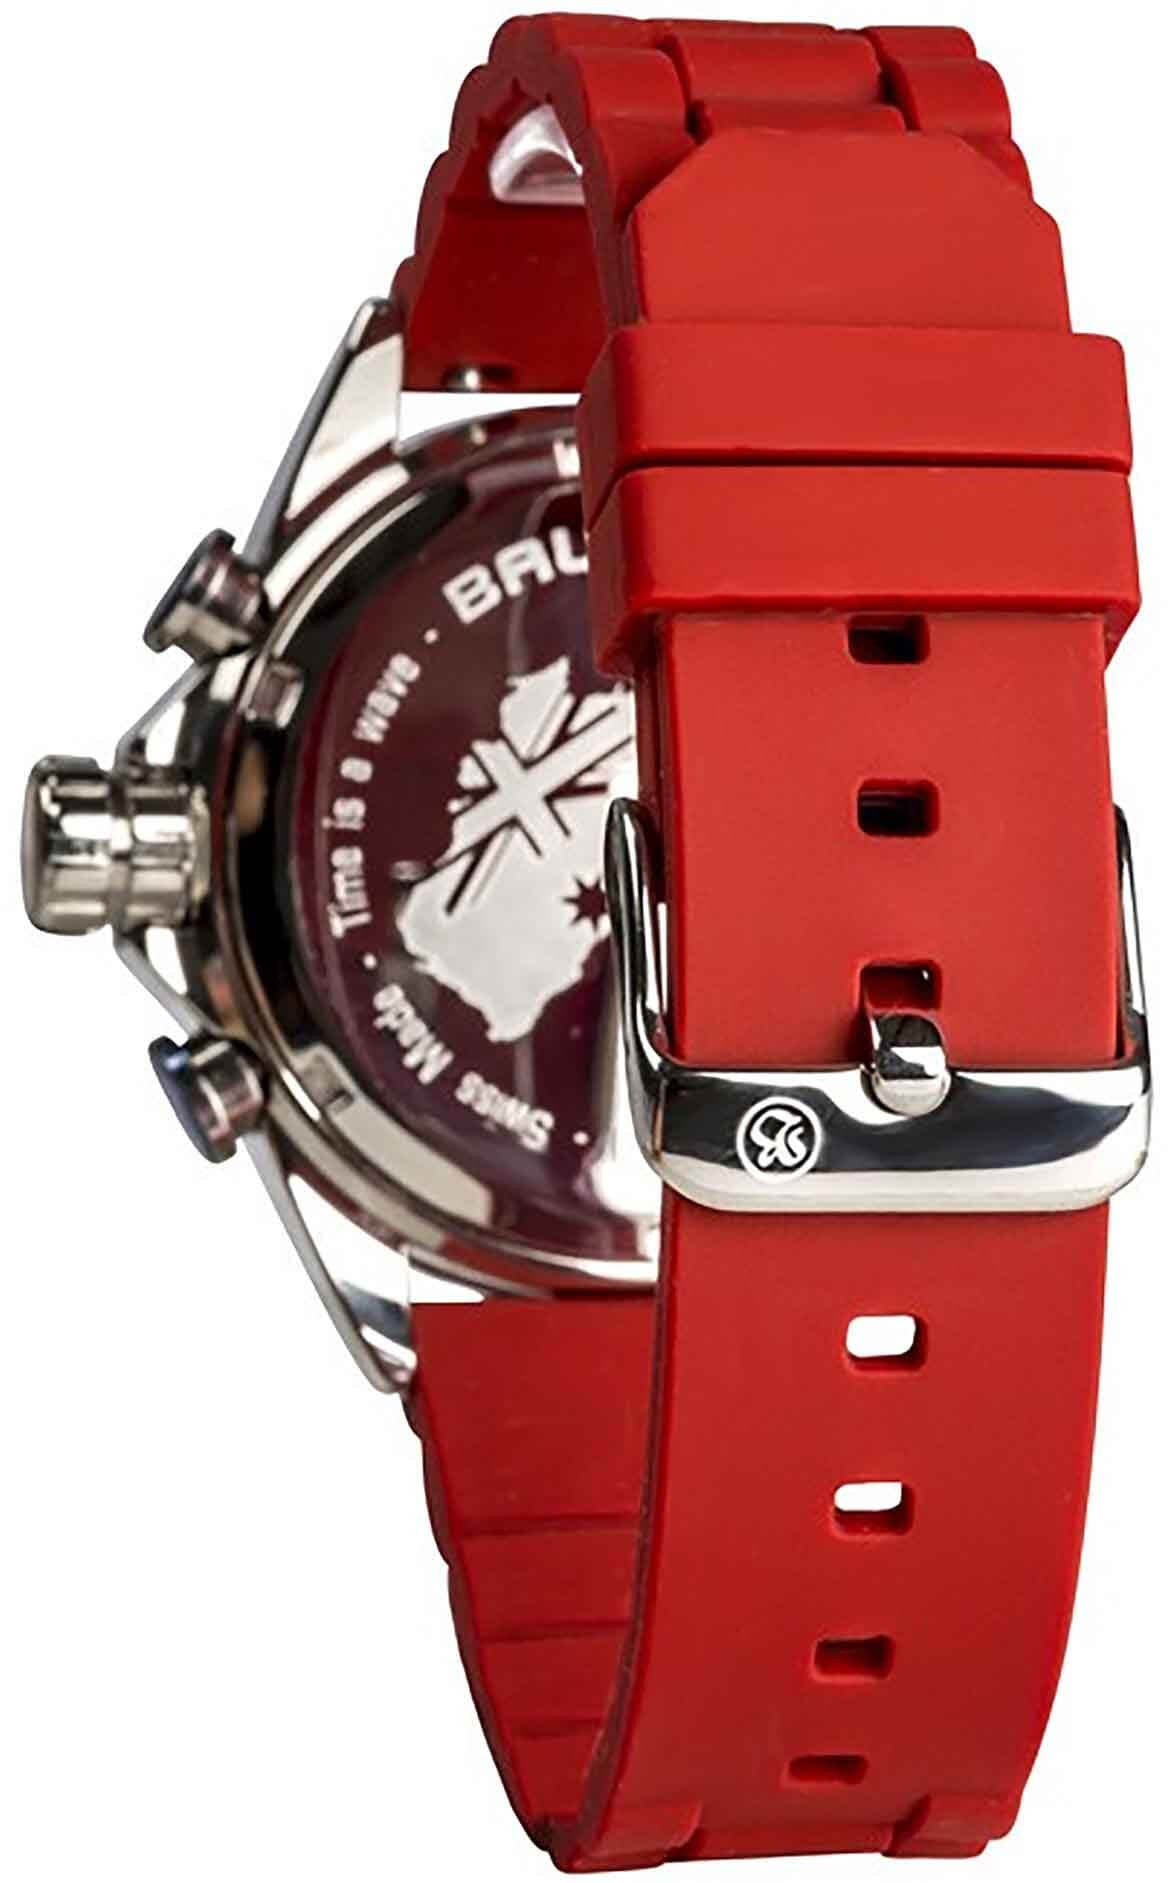 Bausele Australian Swiss Made Men's Oceanmoon Watch - Red Earth